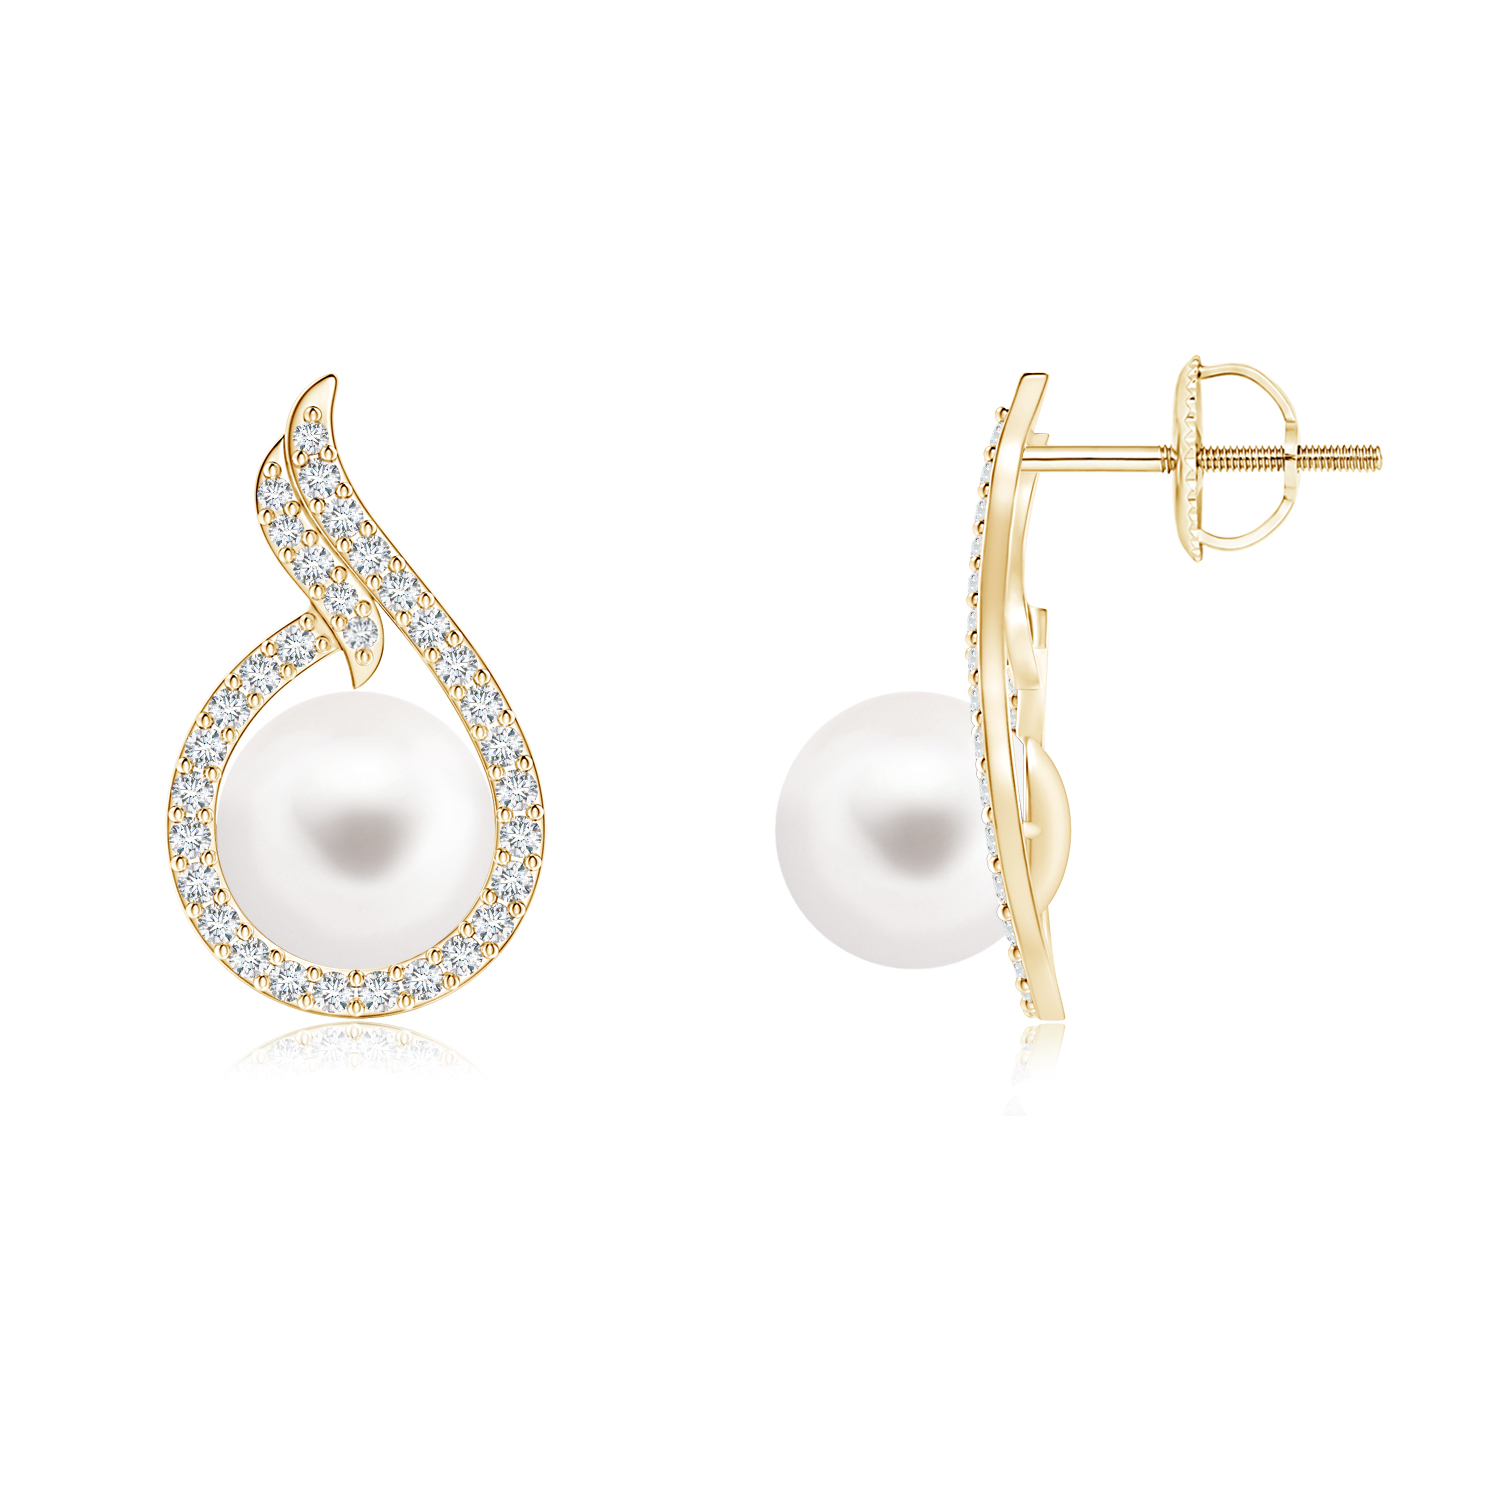 Ball Shaped FreshWater Cultured Pearl Earrings with Diamond Swirl Frame - Angara.com